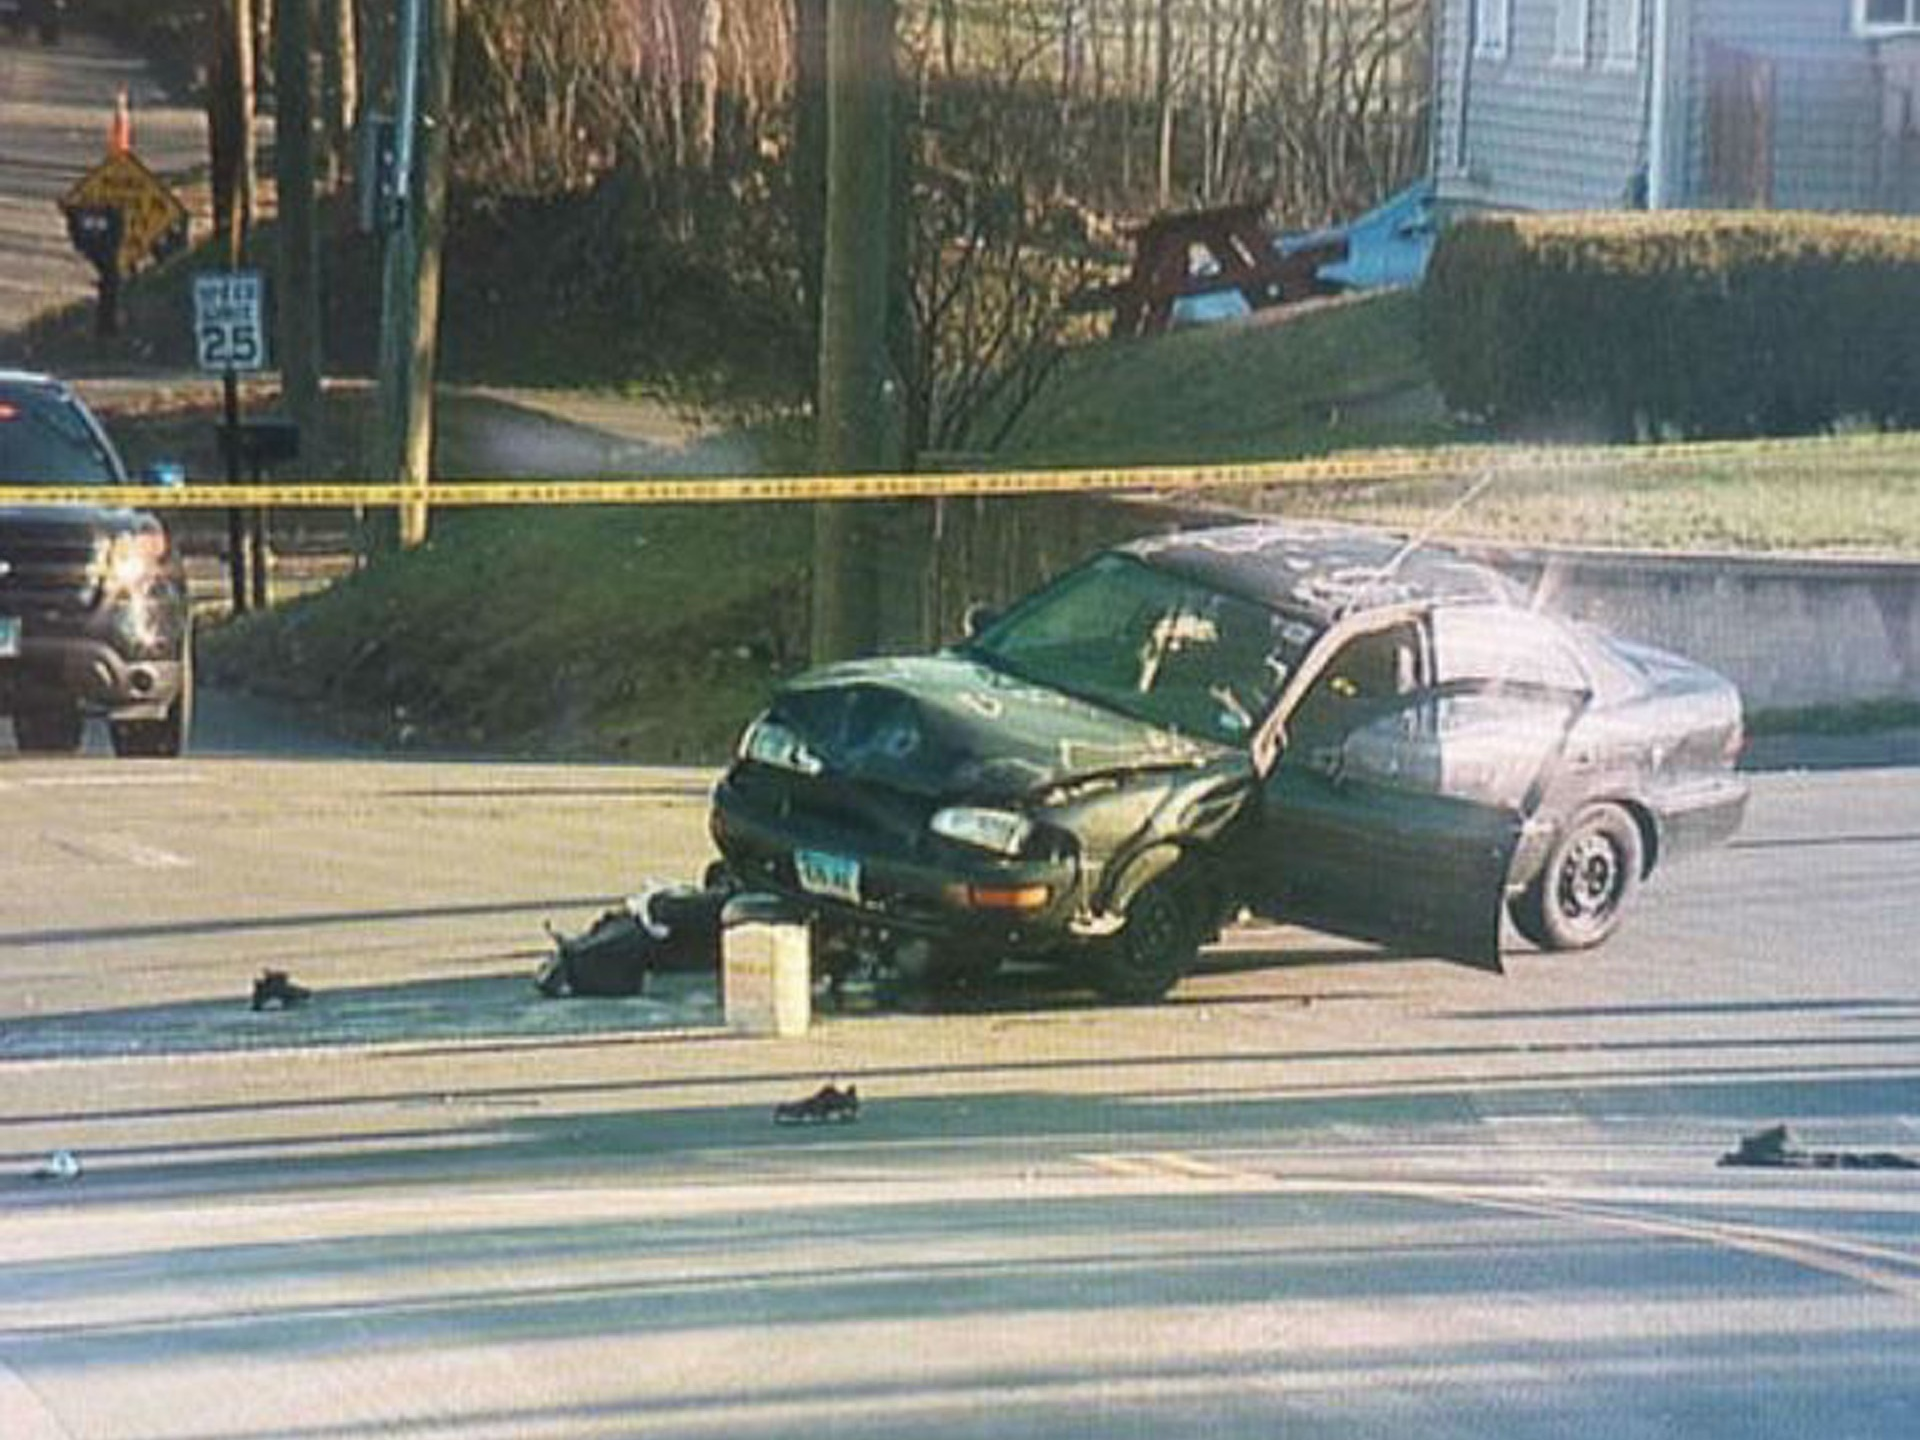 Officials identify victim of fatal motorcycle crash in North Branford